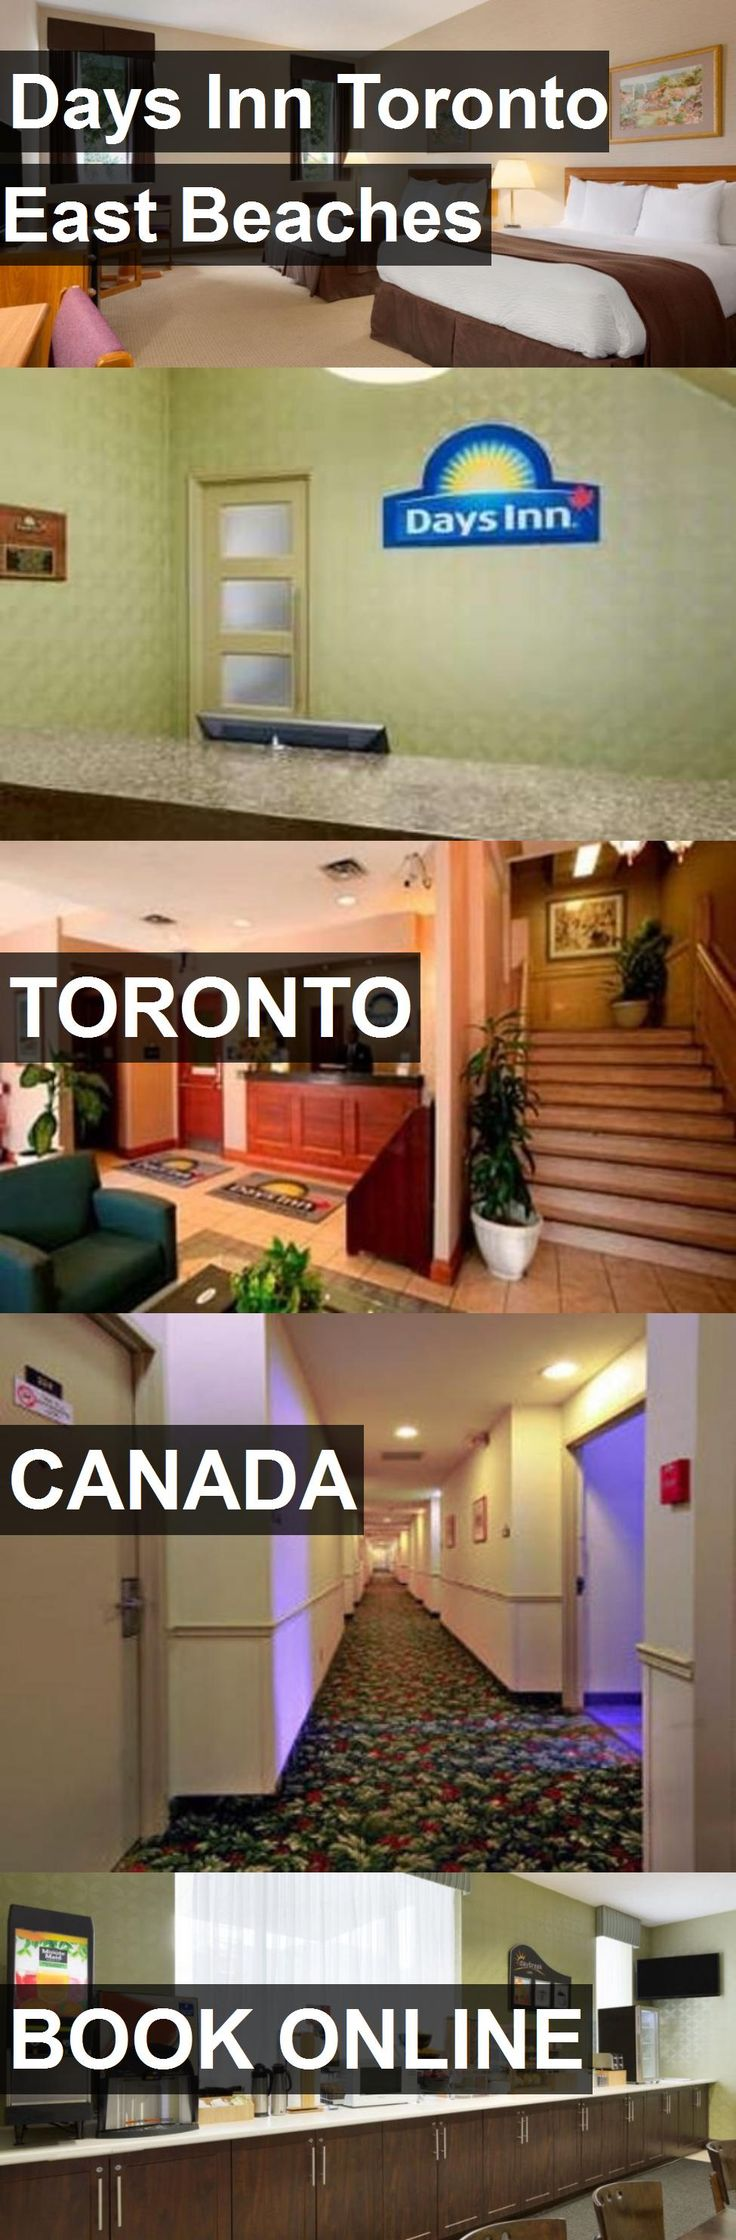 Hotel Days Inn Toronto East Beaches in Toronto, Canada. For more information, photos, reviews and best prices please follow the link. #Canada #Toronto #hotel #travel #vacation